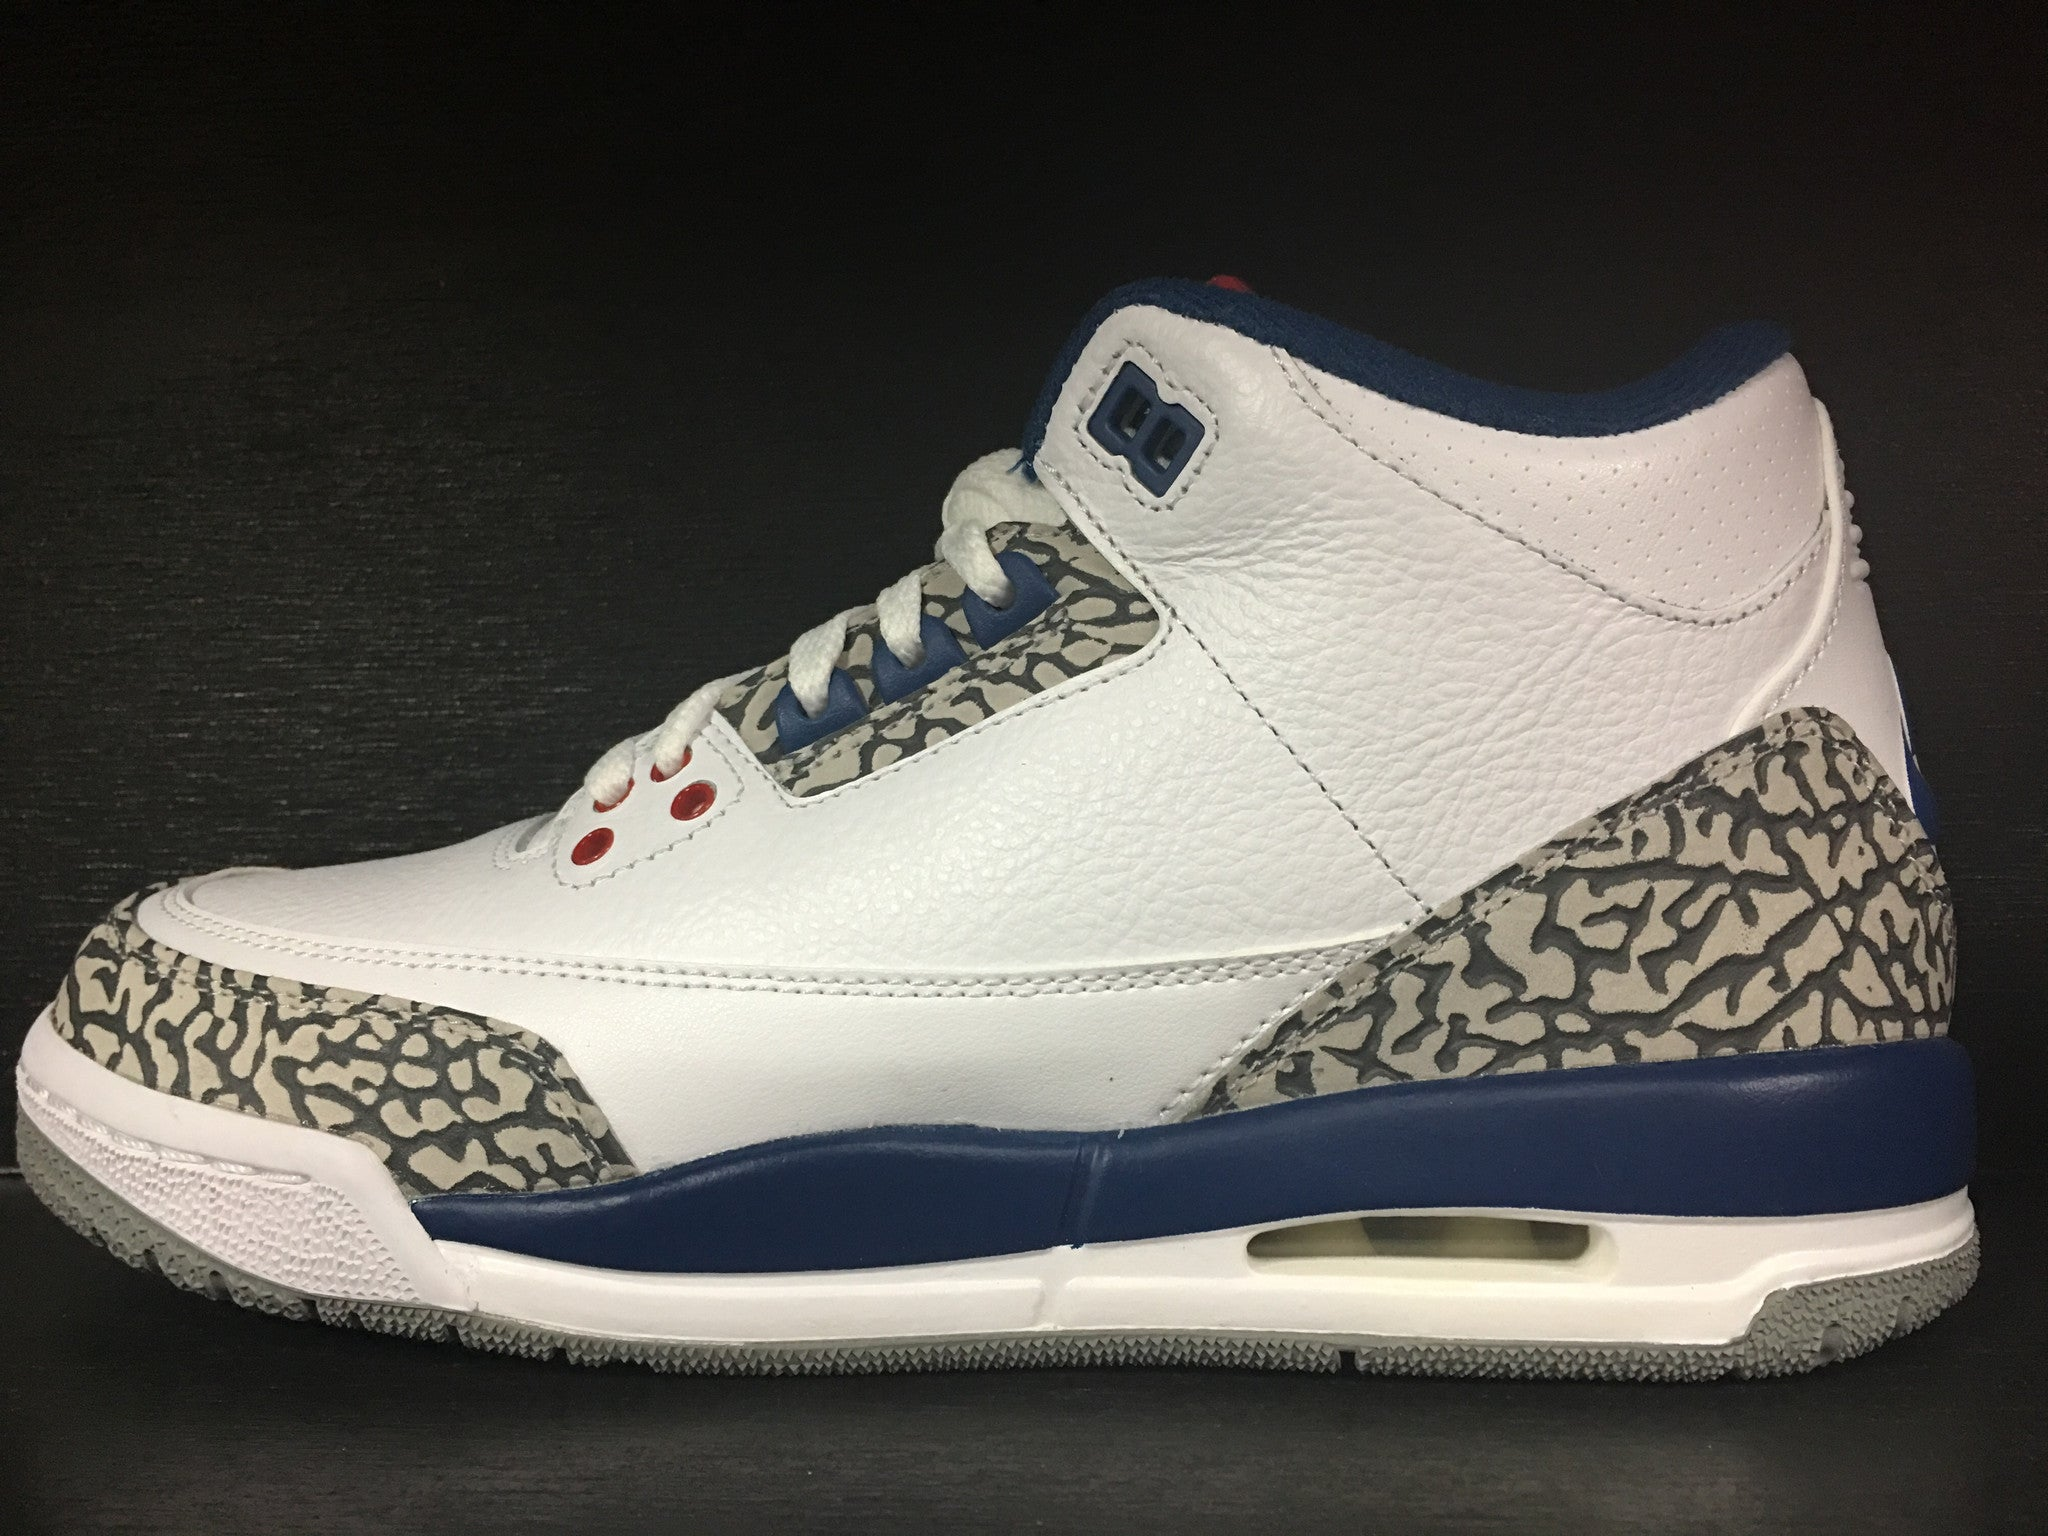 Air Jordan 3 Retro 'True Blue' Grade School